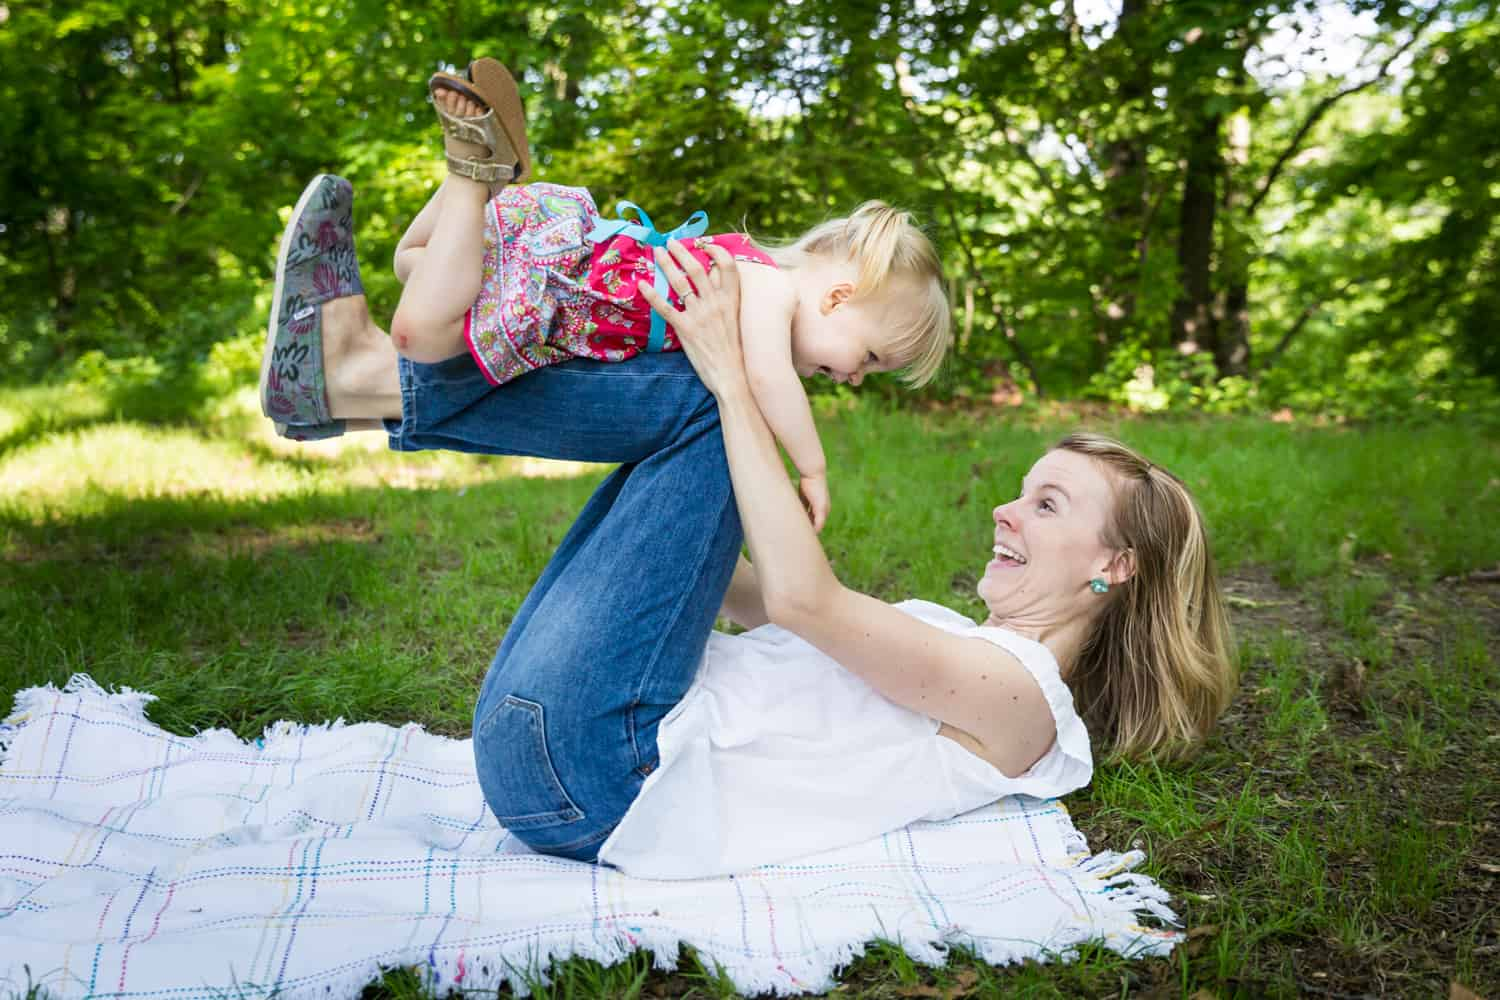 Mother lifting little girl on her knees during a Forest Park family photo shoot